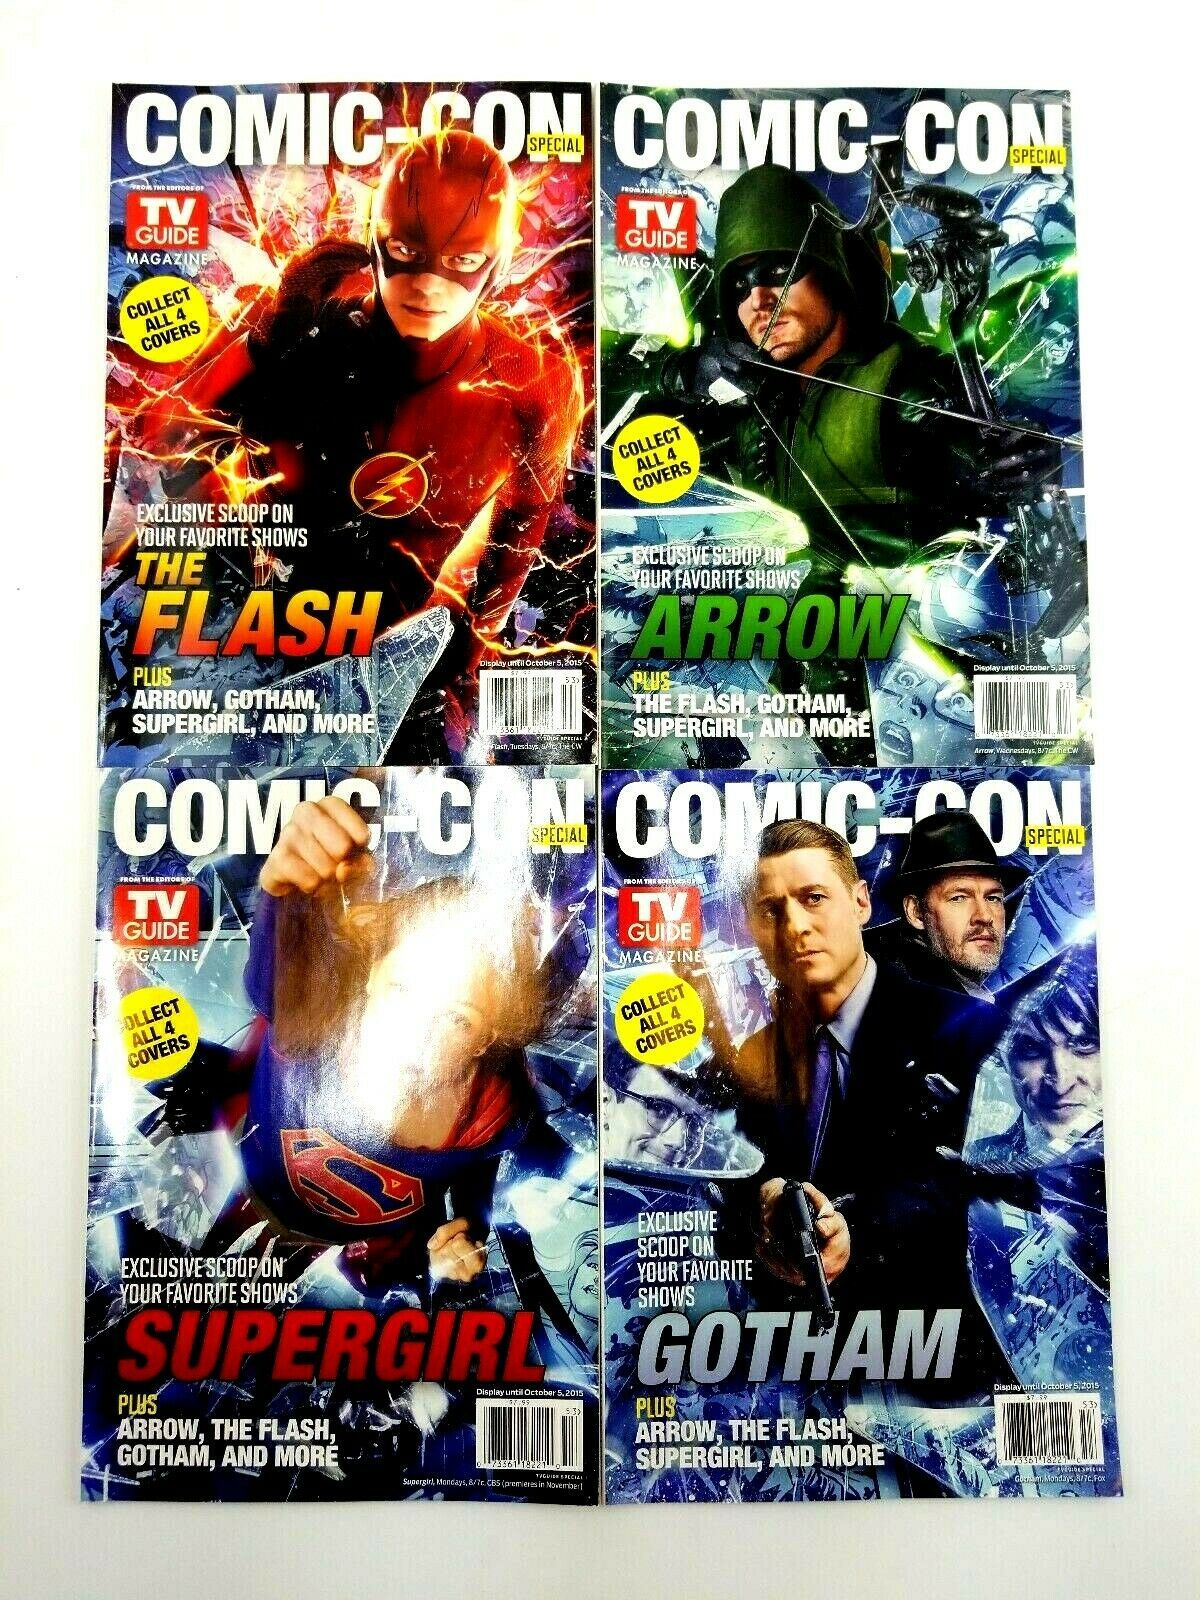 SDCC 2015 TV Guide Magazine Comic Con Exclusive Set Supergirl Arrow Flash Gotham